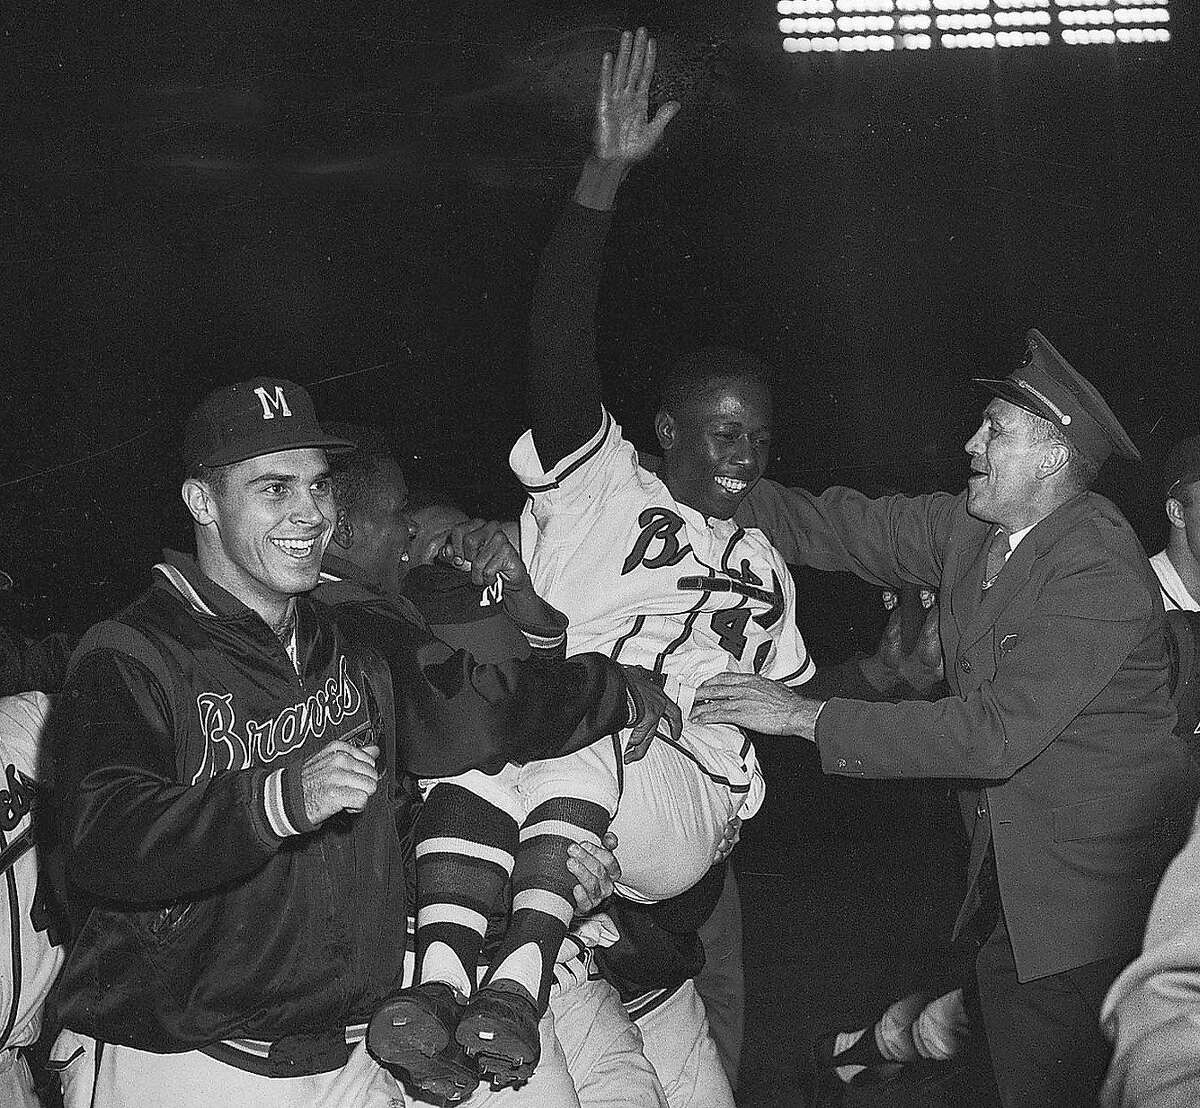 Hank Aaron is carried off the field by teammates after his home run against the Cardinals clinched the 1957 pennant for the Milwaukee Braves. Milwaukee went on to beat the Yankees in the World Series, with Aaron smashing three home runs there.